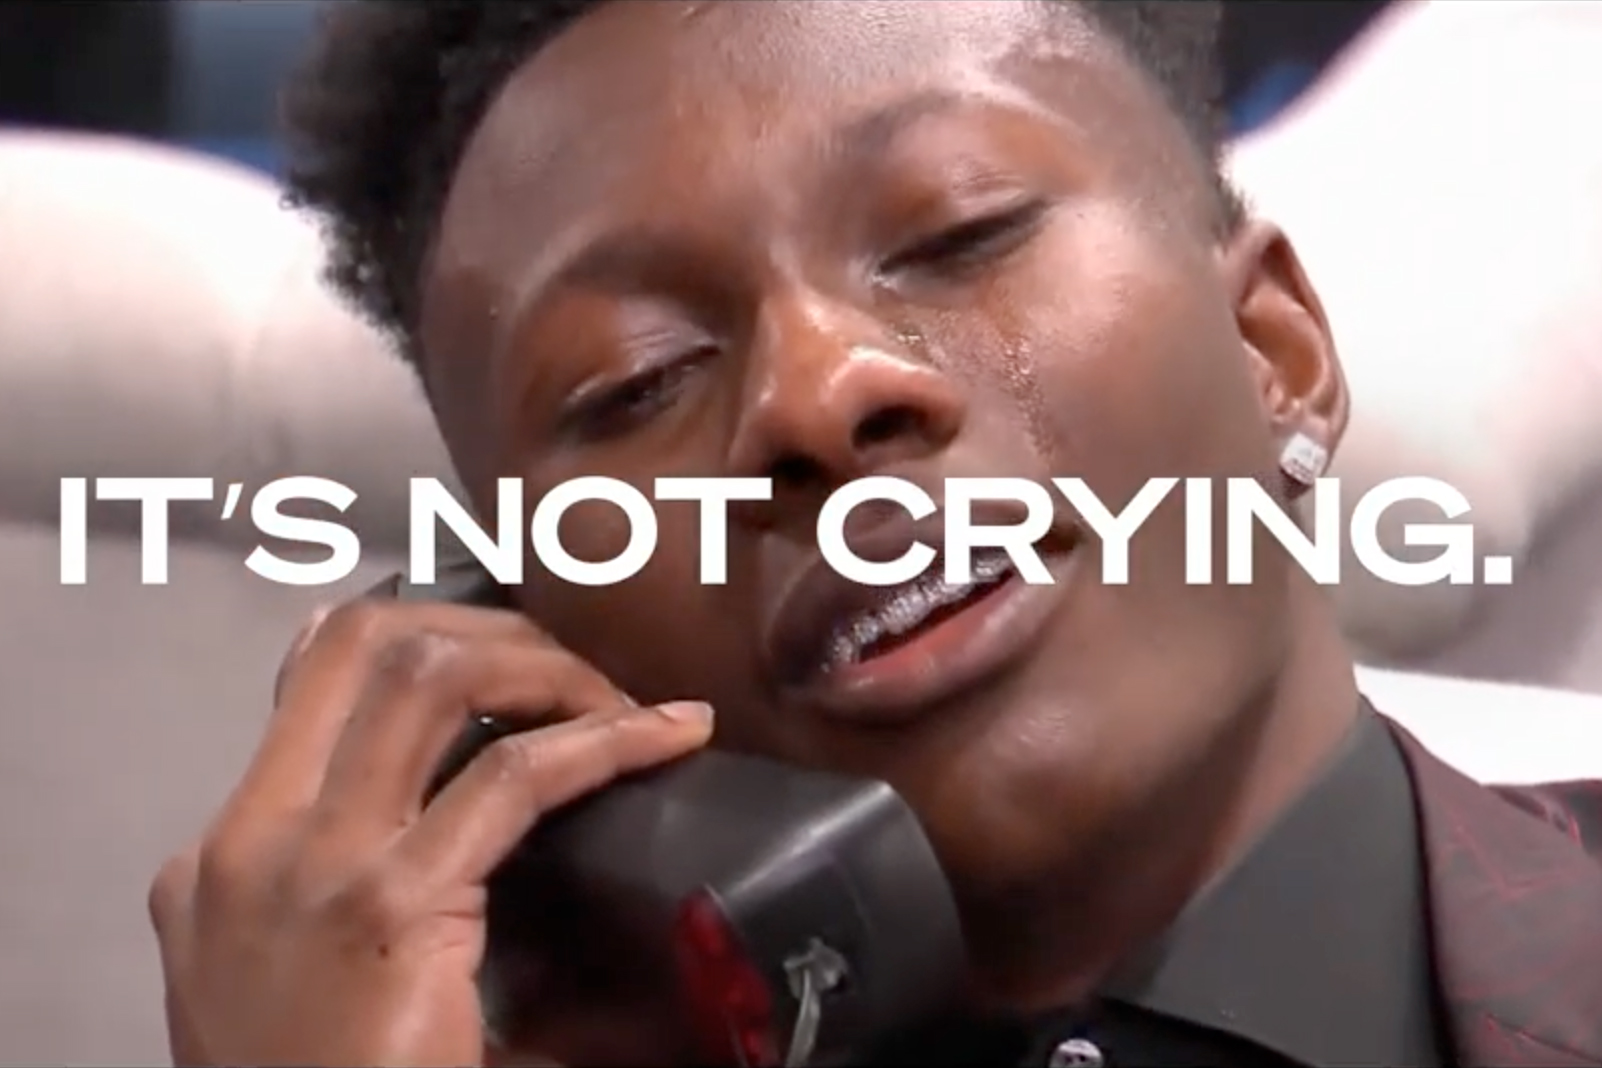 Oikos Triple Zero shows there's crying in football in a new spot for the NFL Draft